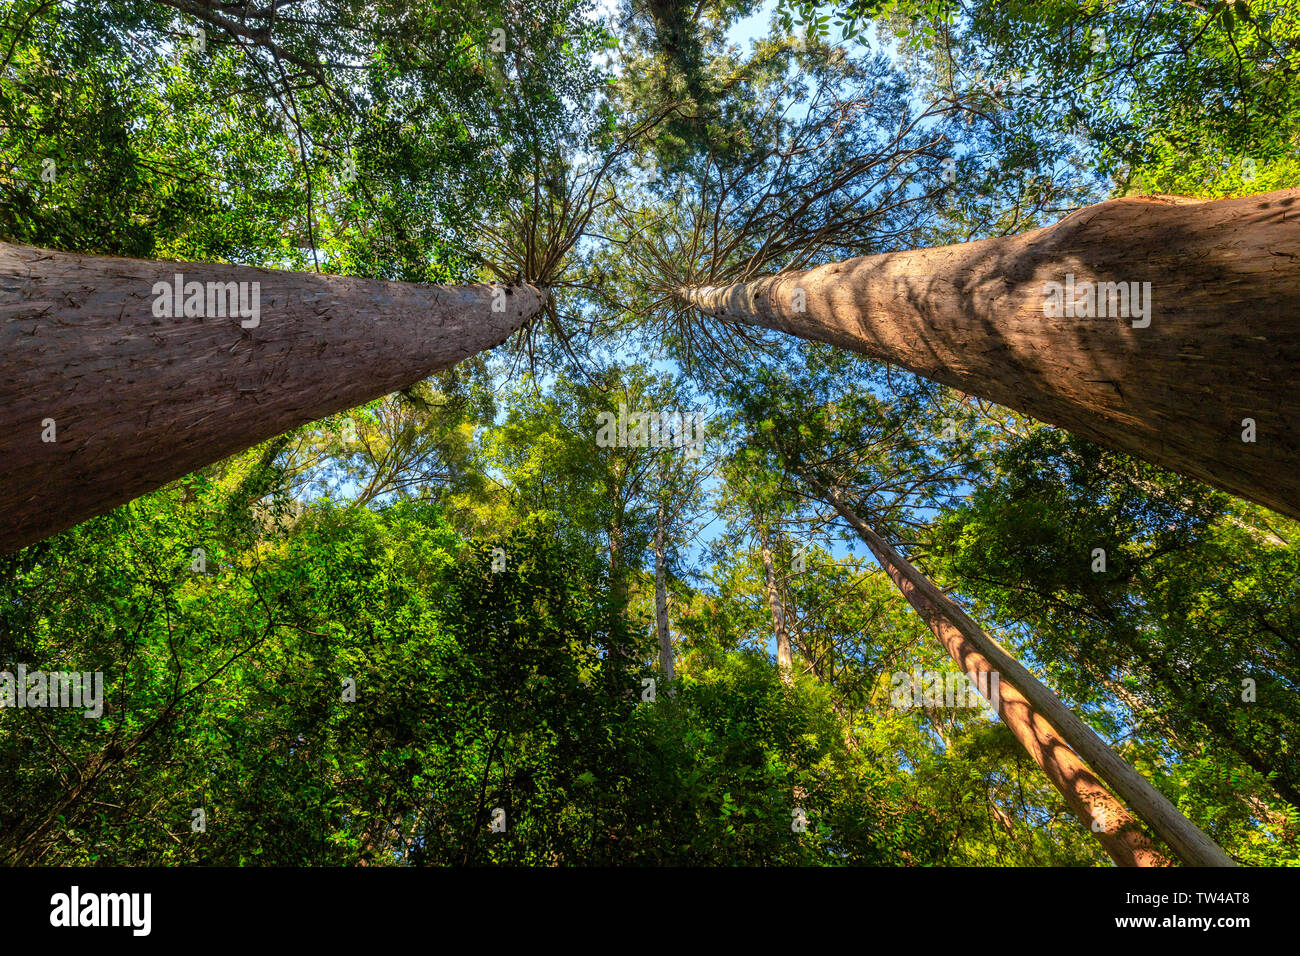 Japanese wild mountain forest of the Kumano Kodo trail,view from below. Stock Photo